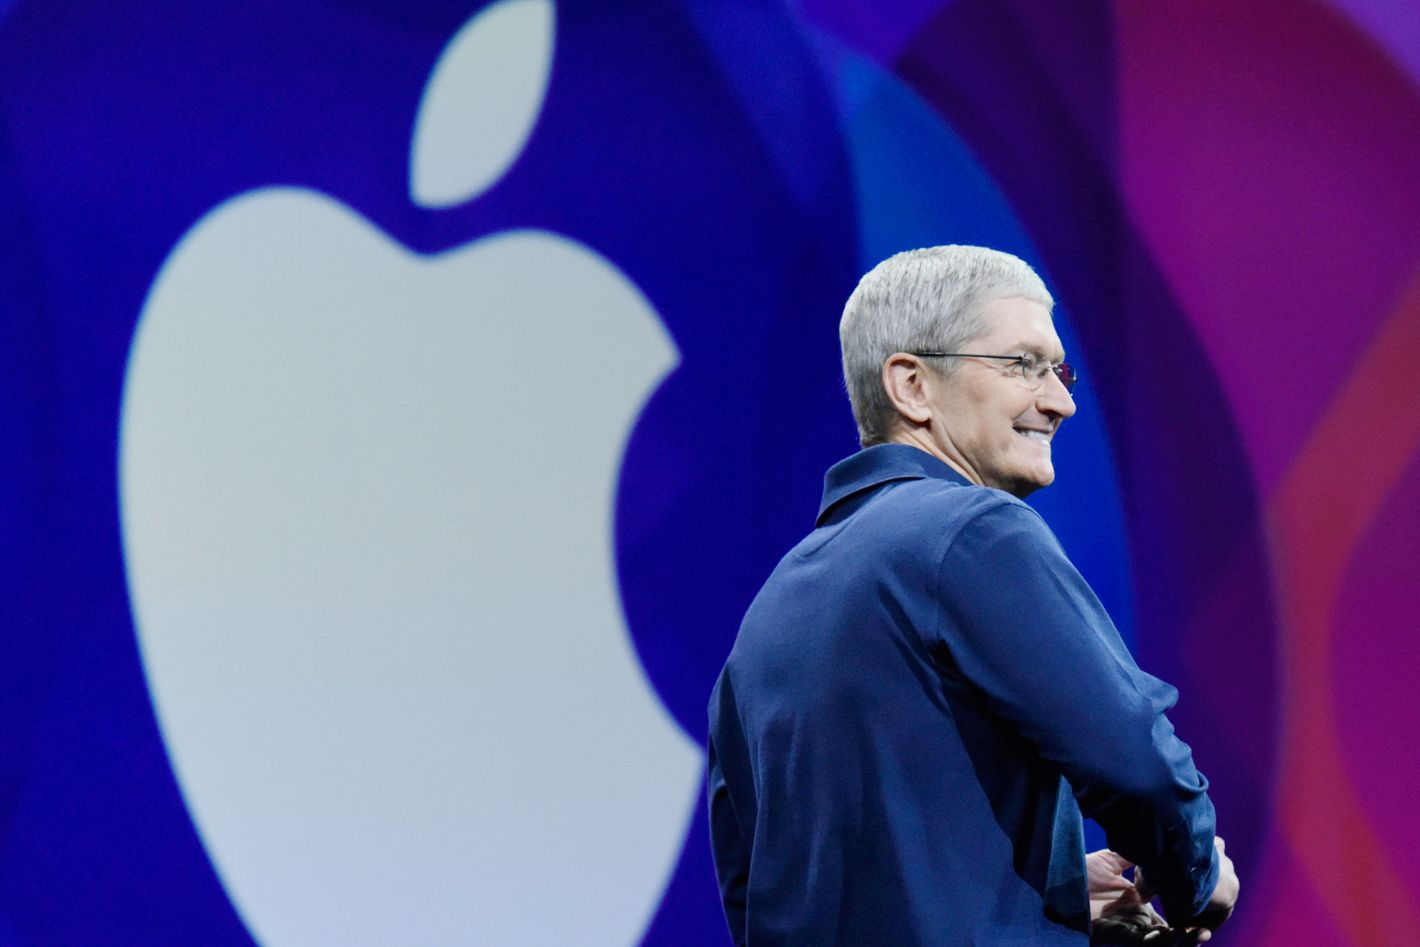 How To Watch The Apple Event Tomorrow